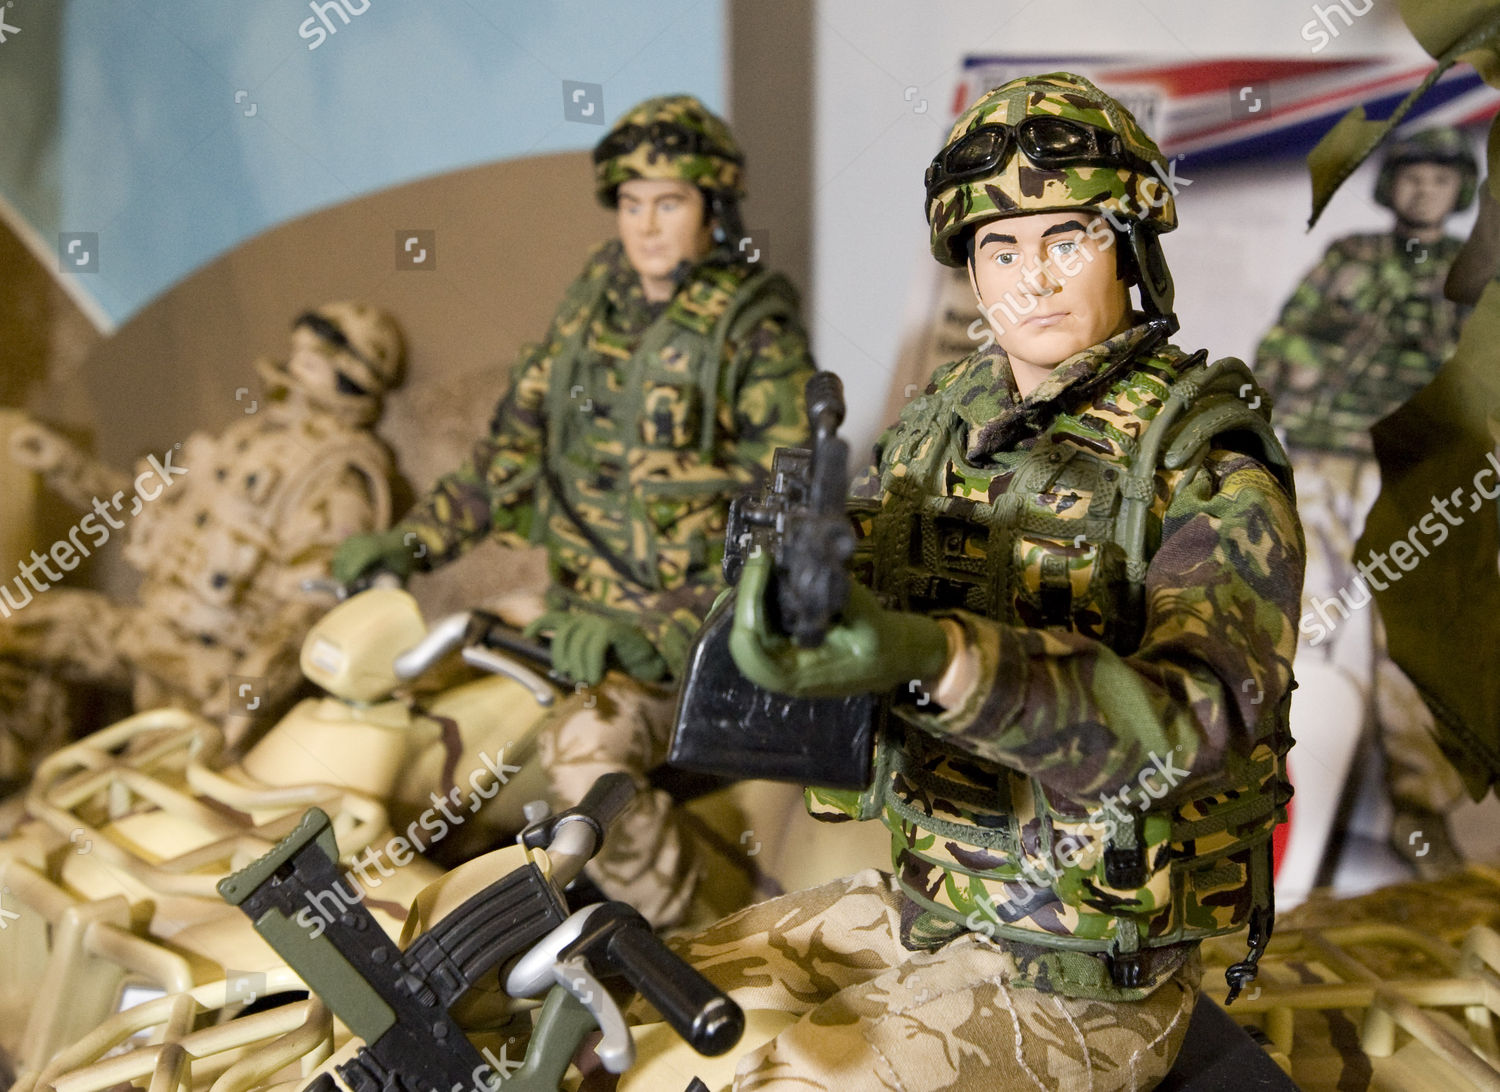 Hmarmed Forces Military Action Figures Editorial Stock Photo Stock Image Shutterstock